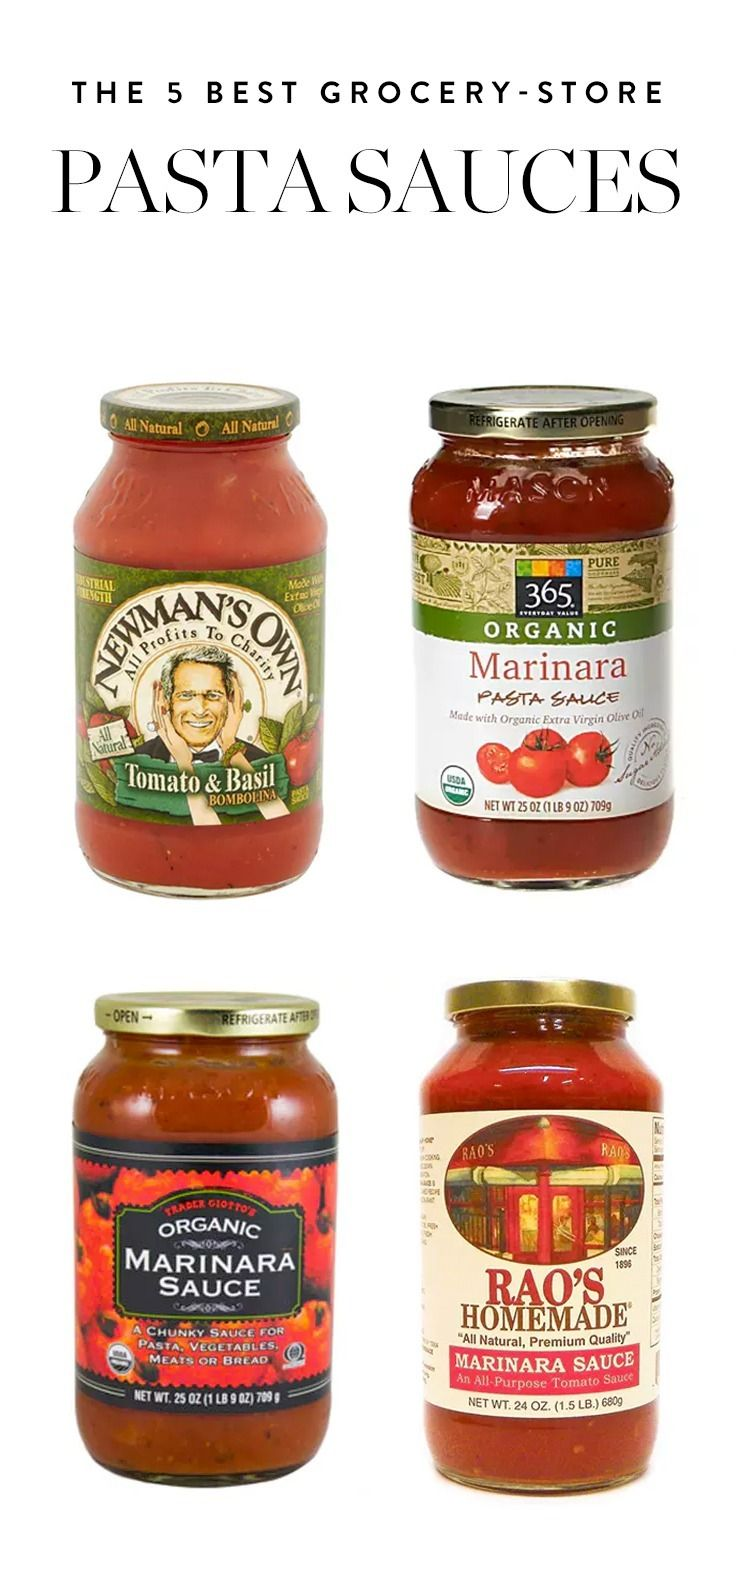 These 5 stellar sauces are doing the heavy lifting for us. Here are our favorite grocery store pasta sauces.